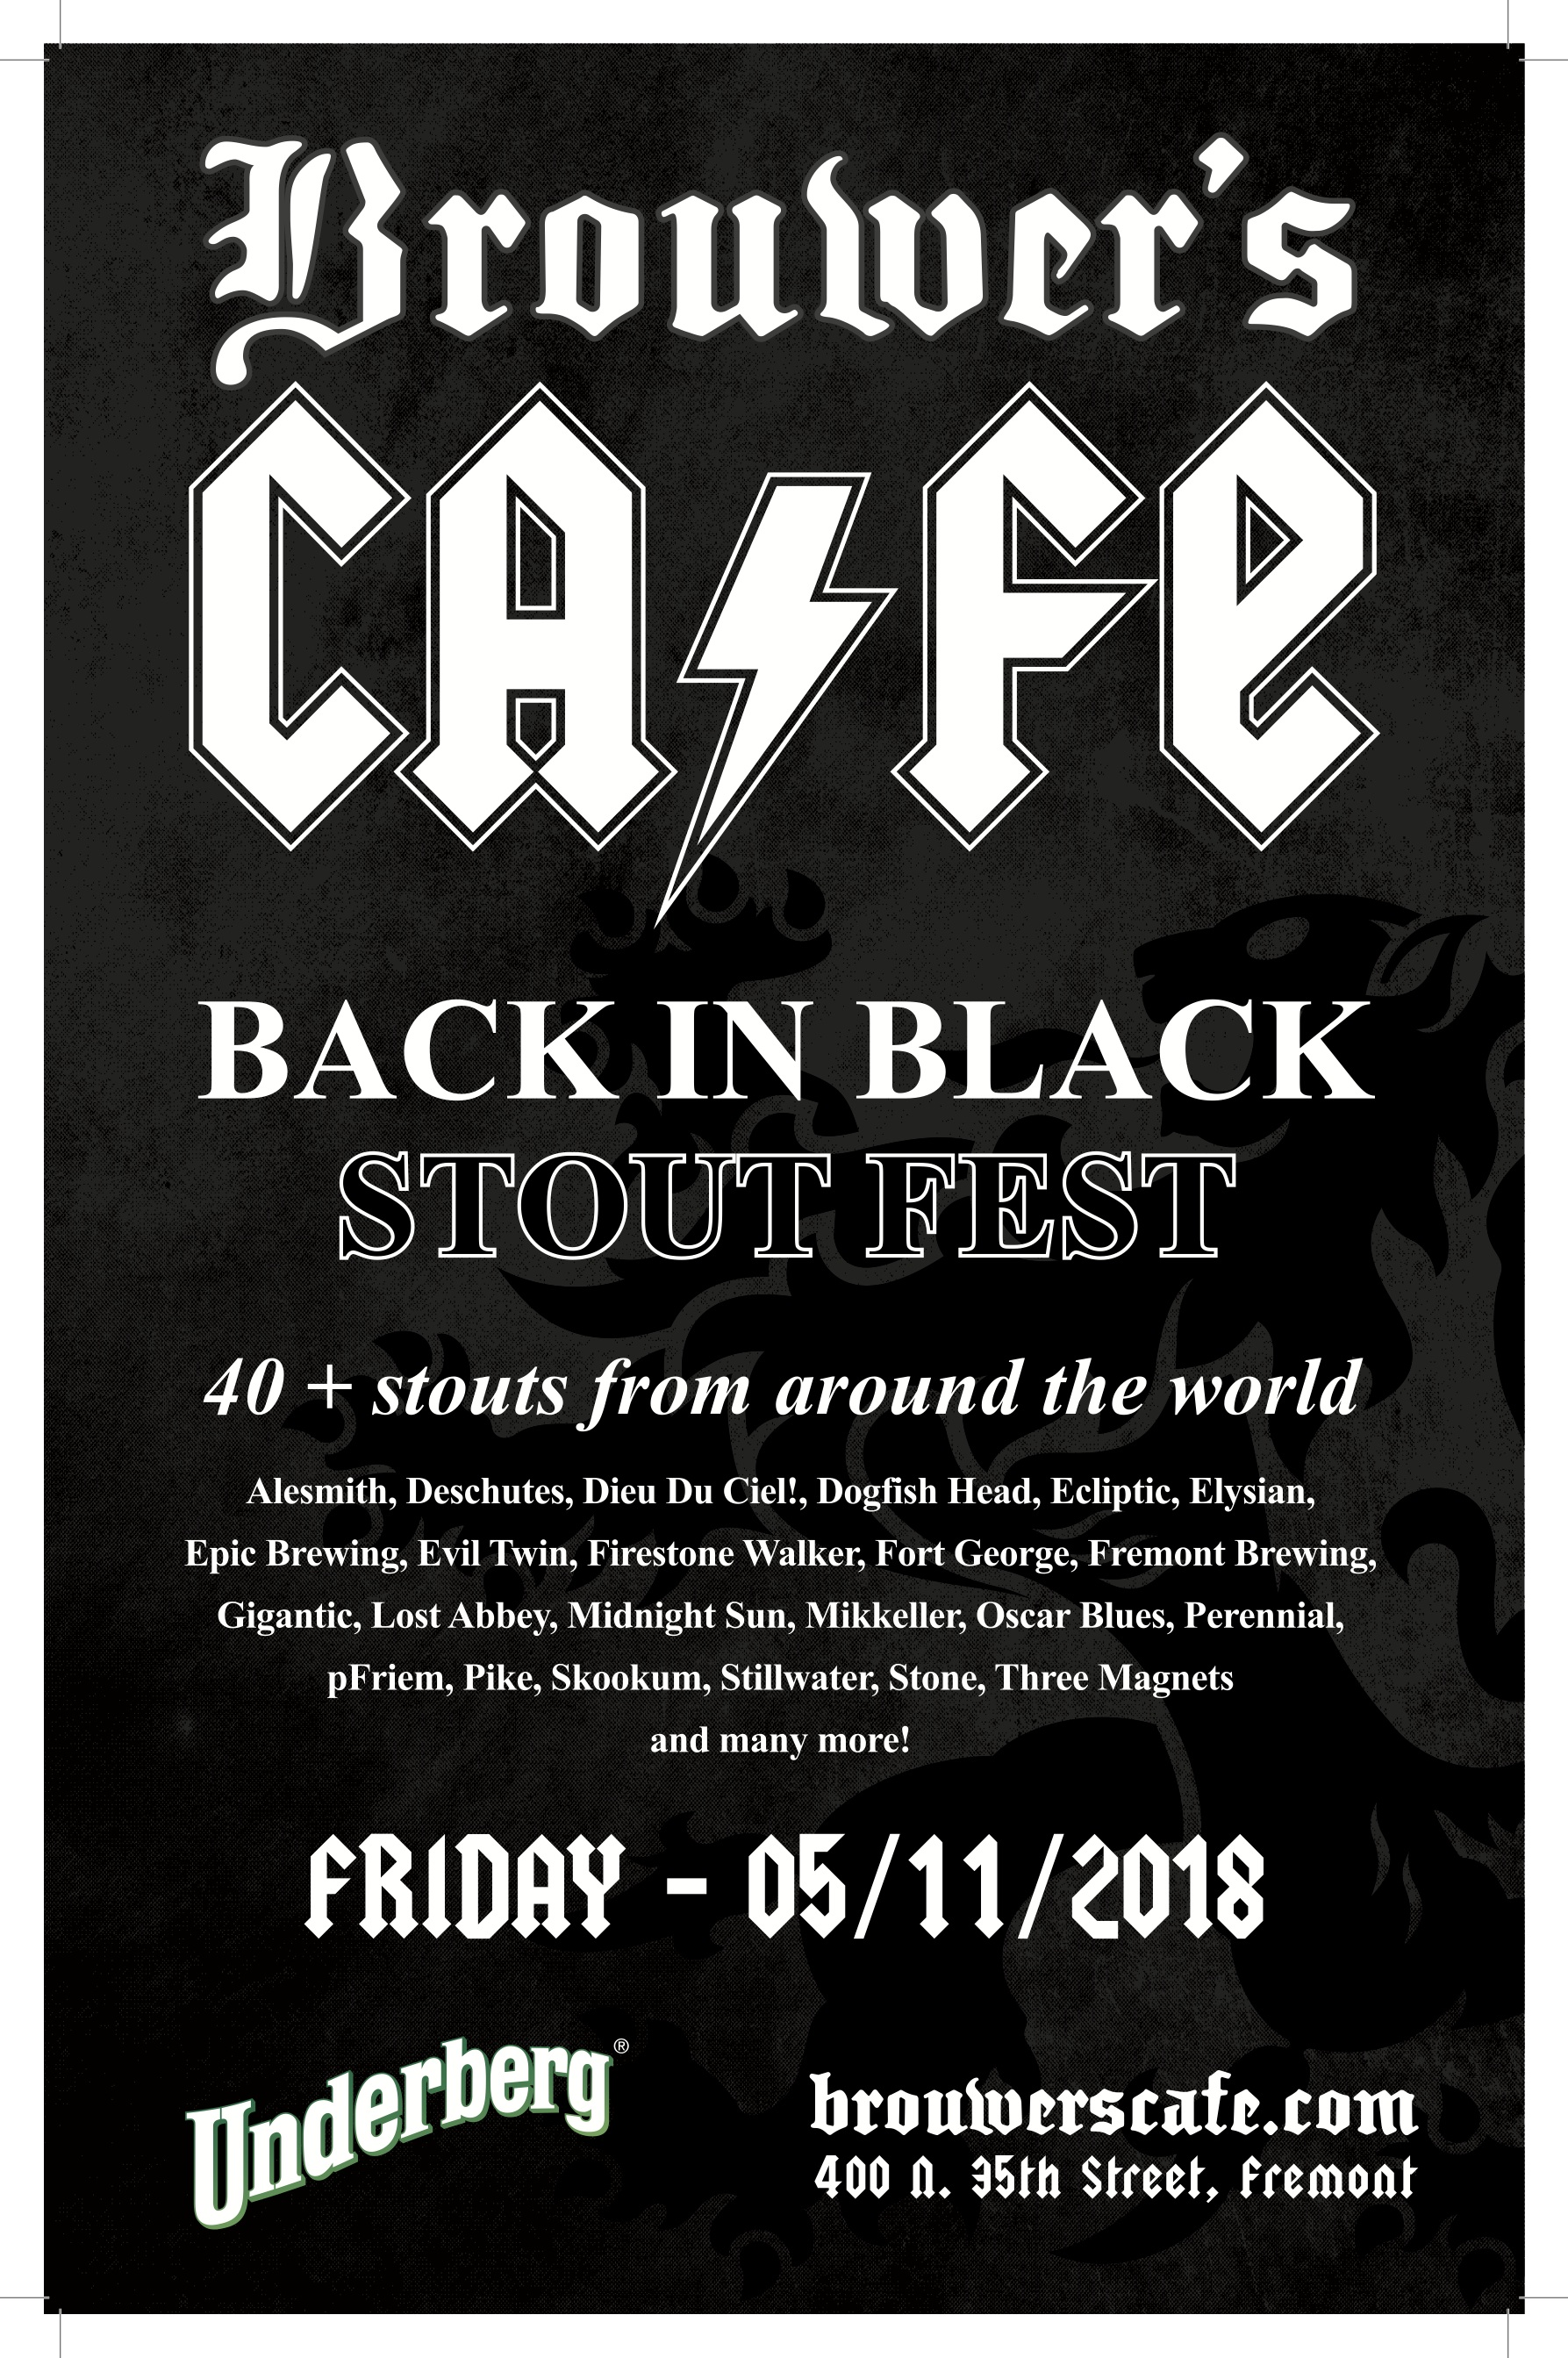 Friday, May 11th @11am Back in Black Stout Fest